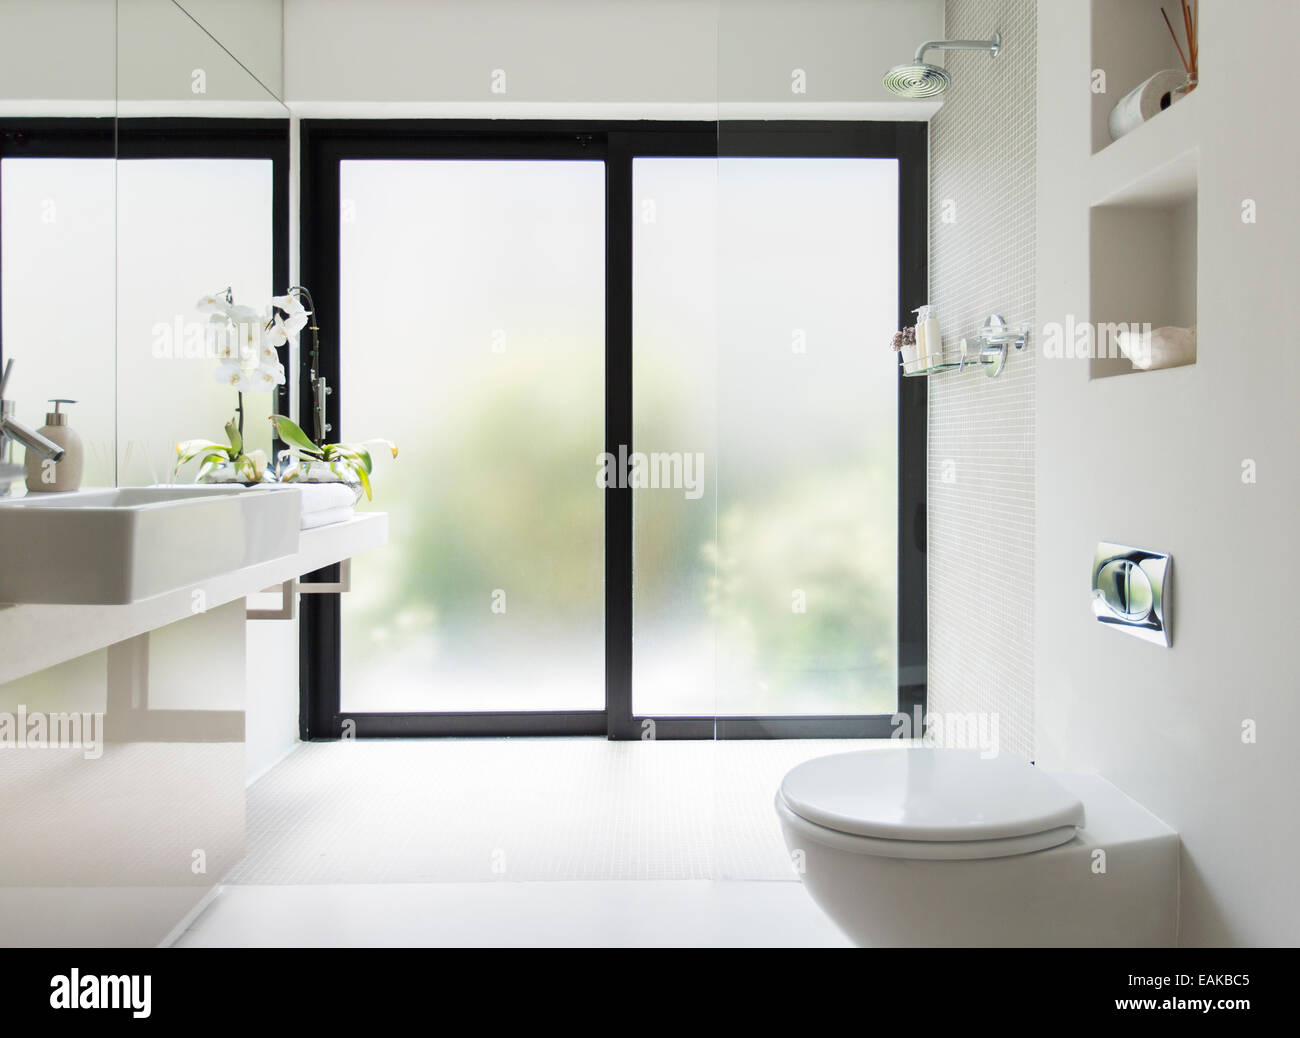 White Clean Modern Bathroom With Frosted Glass Door Stock